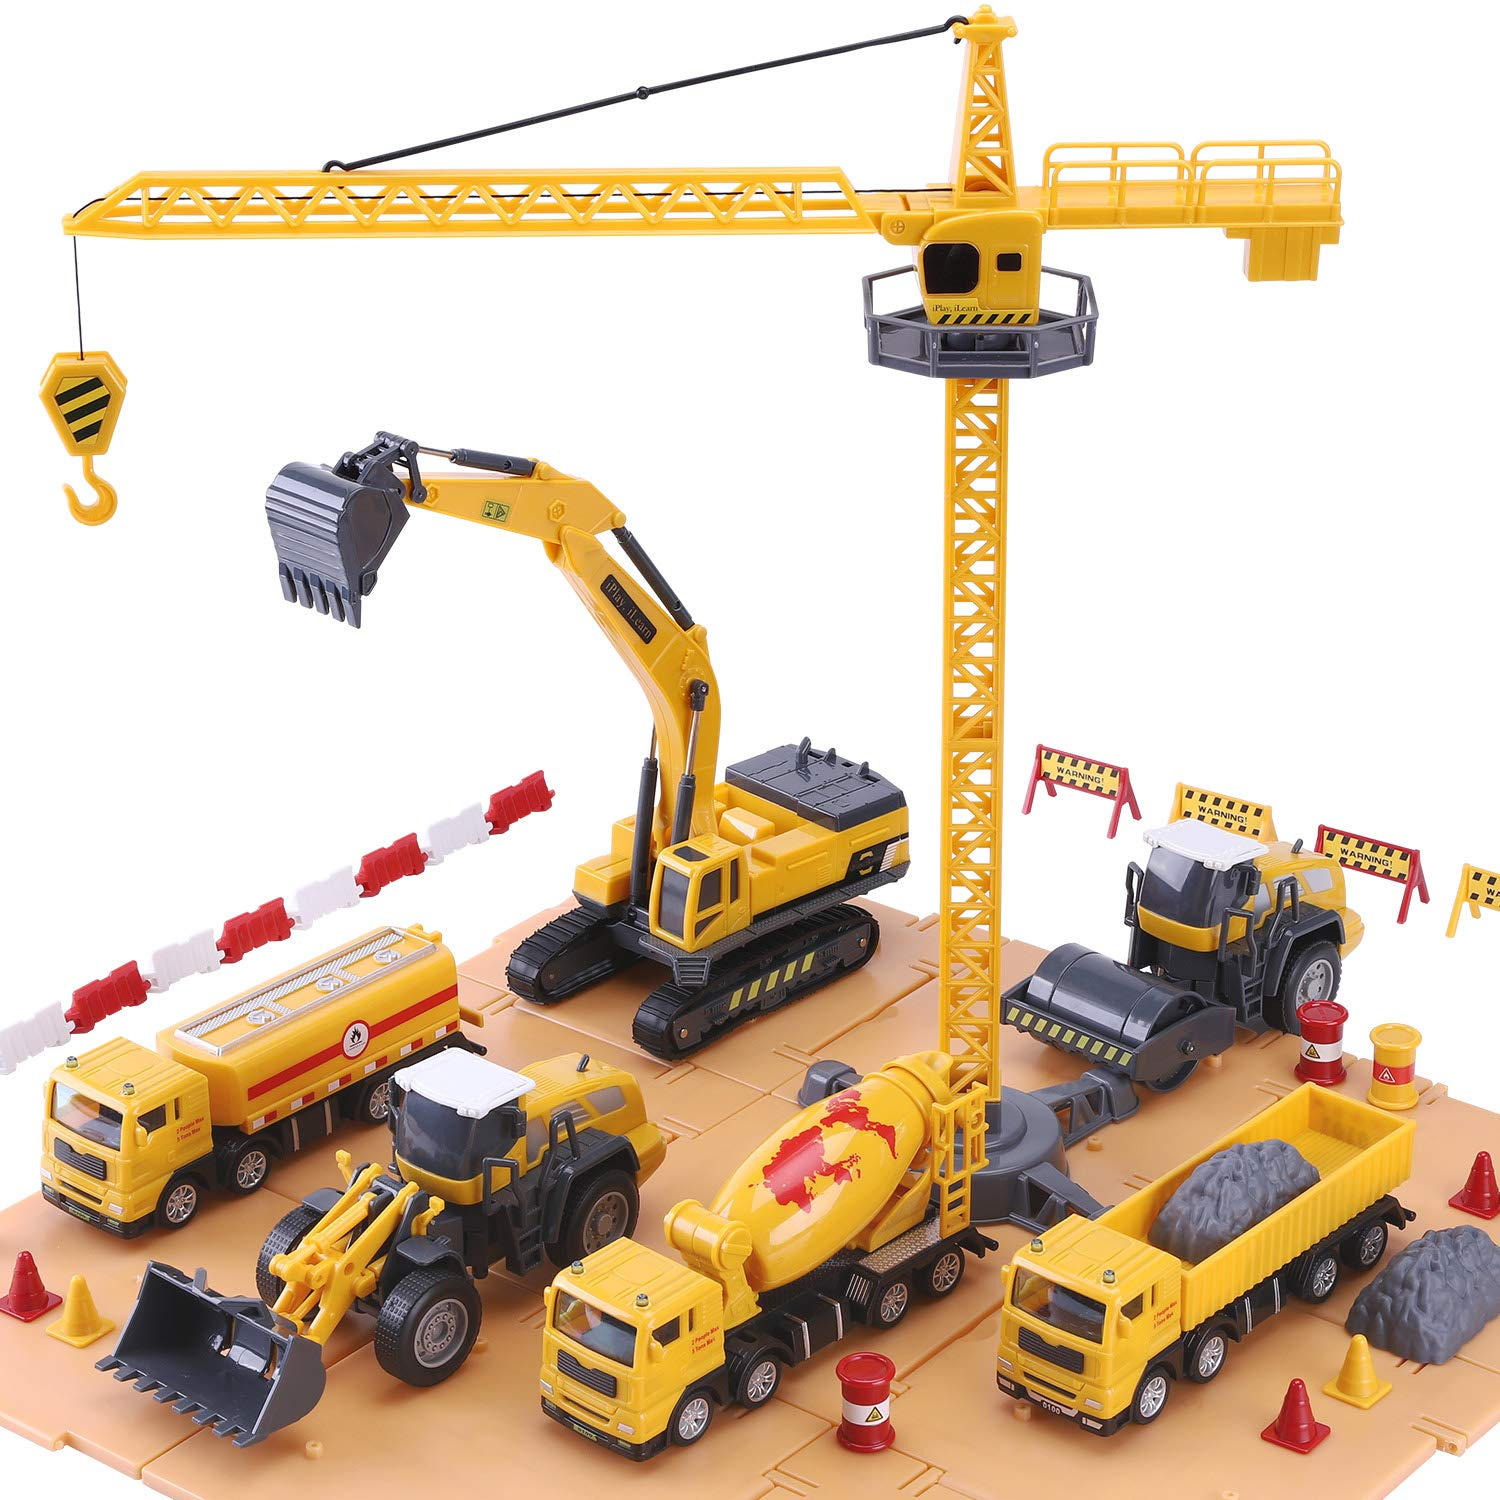 iPlay, iLearn Construction Site Vehicles Toy Set, Kids Engineering Playset, Tractor, Digger, Crane, Dump Trucks, Excavator, Cement, Steamroller for 3, 4, 5 Year Old Toddlers, Boys, Children by iPlay, iLearn